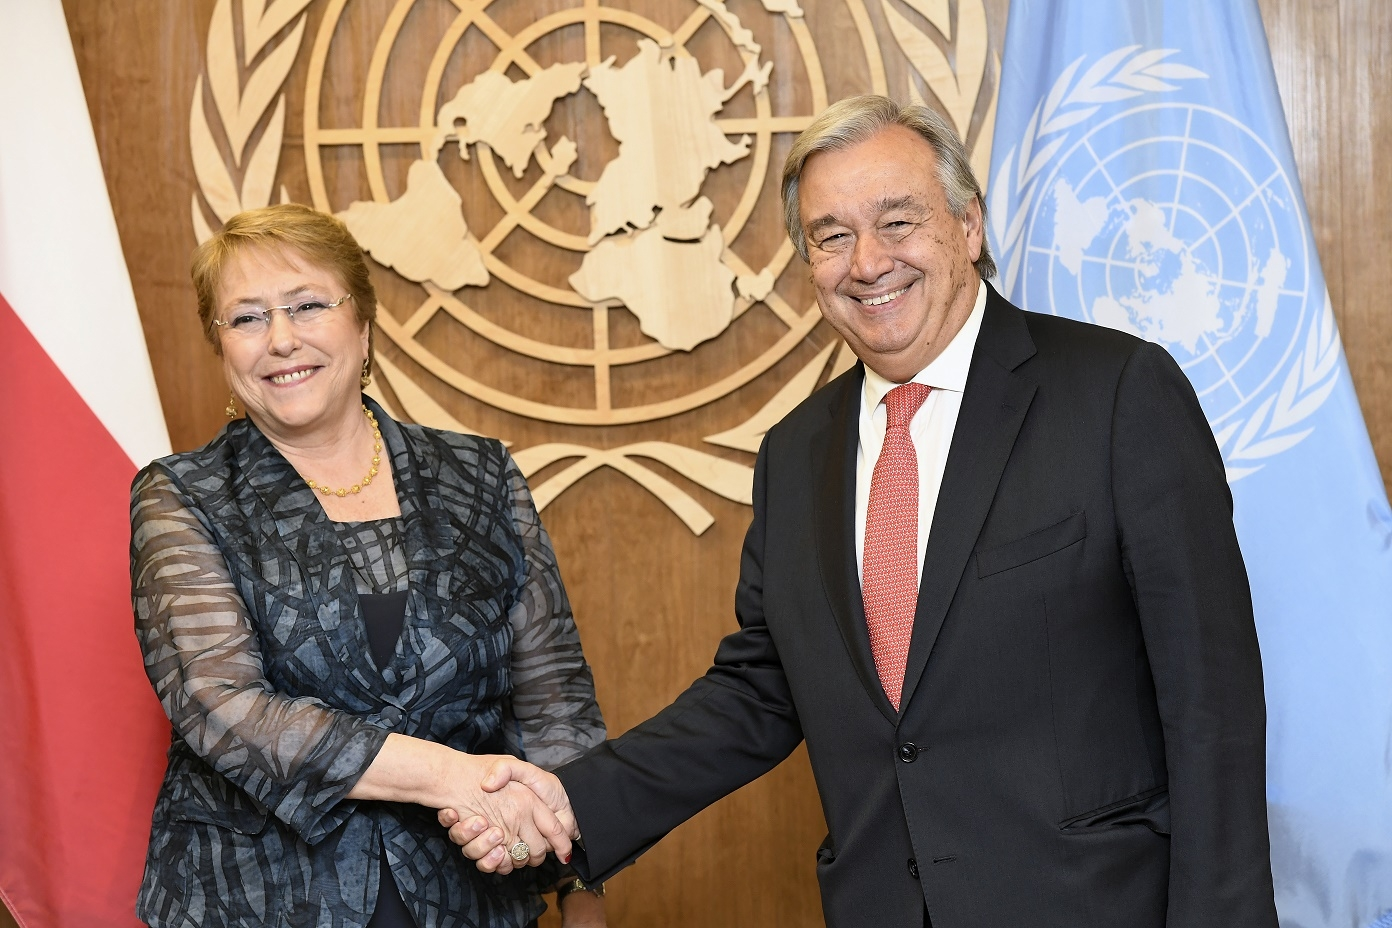 New York City: The United Nations General Assembly approved the appointment of former Chilean President Michelle Bachelet as the High Commissioner for Human Rights in New York City, US on Aug. 10, 2018. She is seen with Secretary-General Antonio Guterres, who nominated her to the post. (File photo: UN/IANS) by .